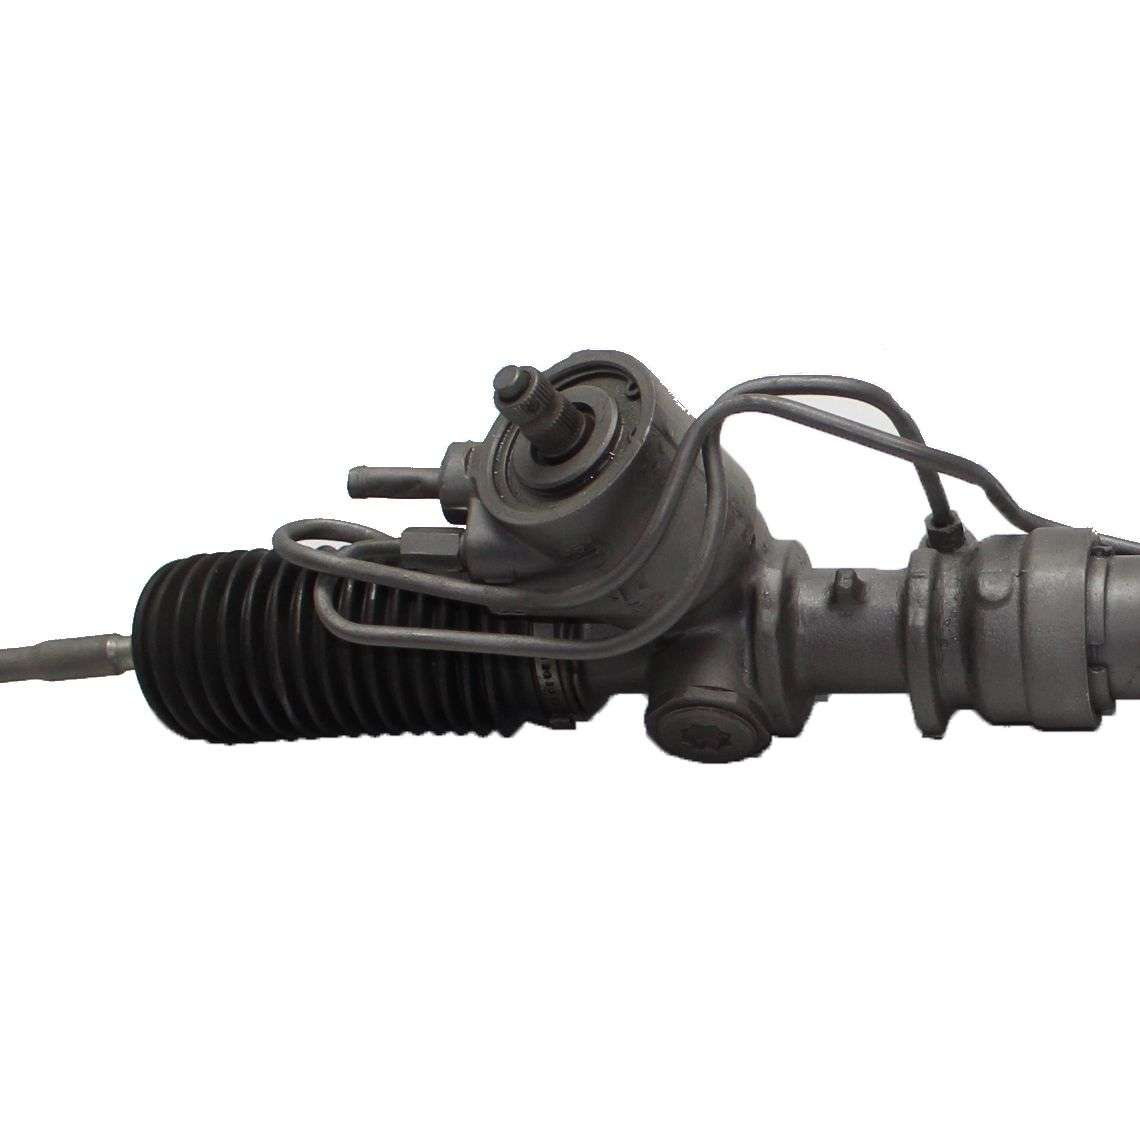 Detroit Axle Complete Power Steering Rack and Pinion Assembly - Made in the  USA